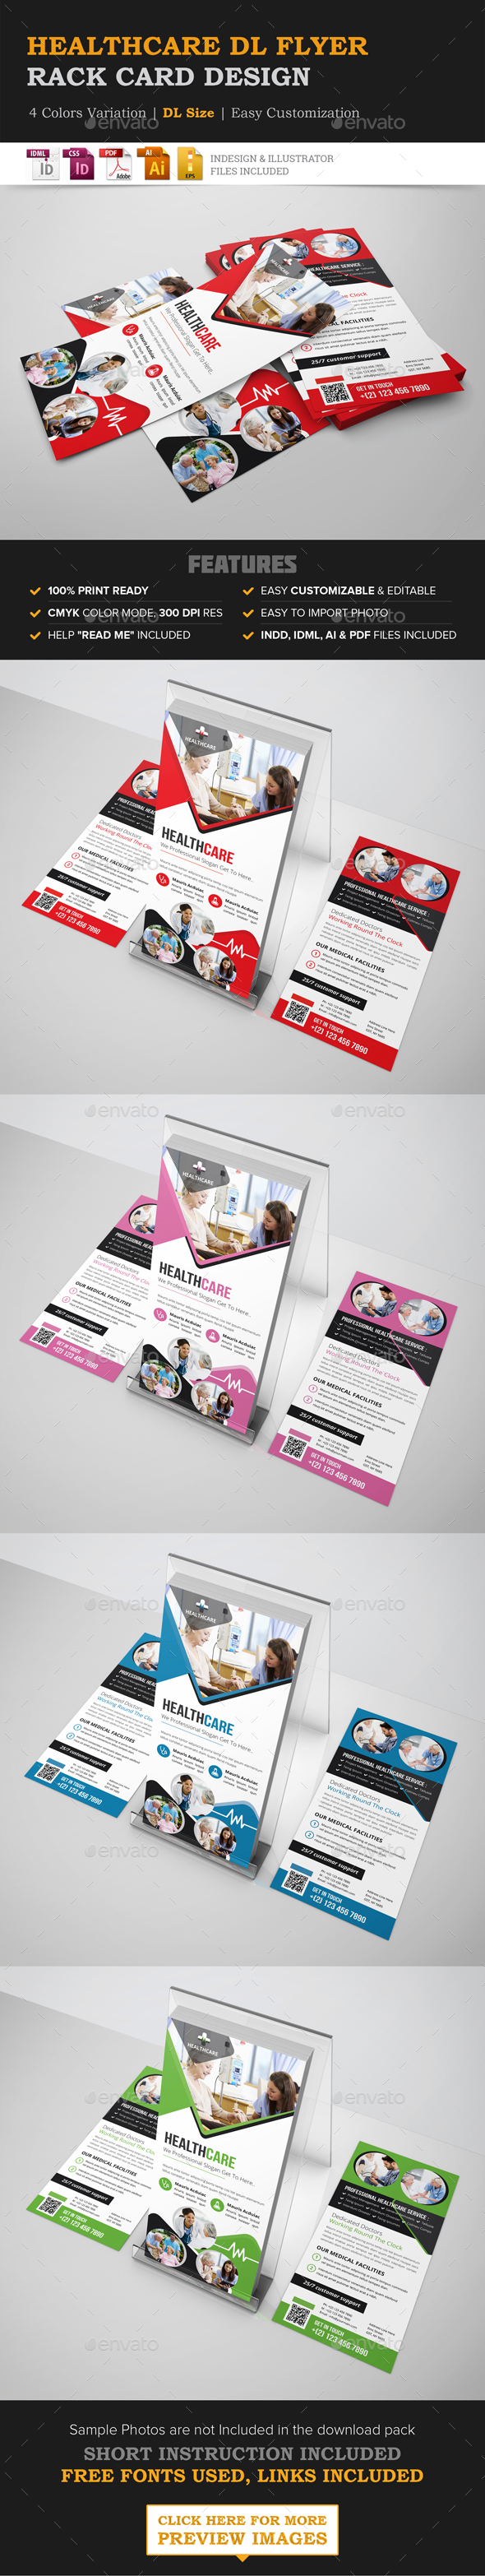 Healthcare Rack card DL Flyer Design Template - Corporate Flyers